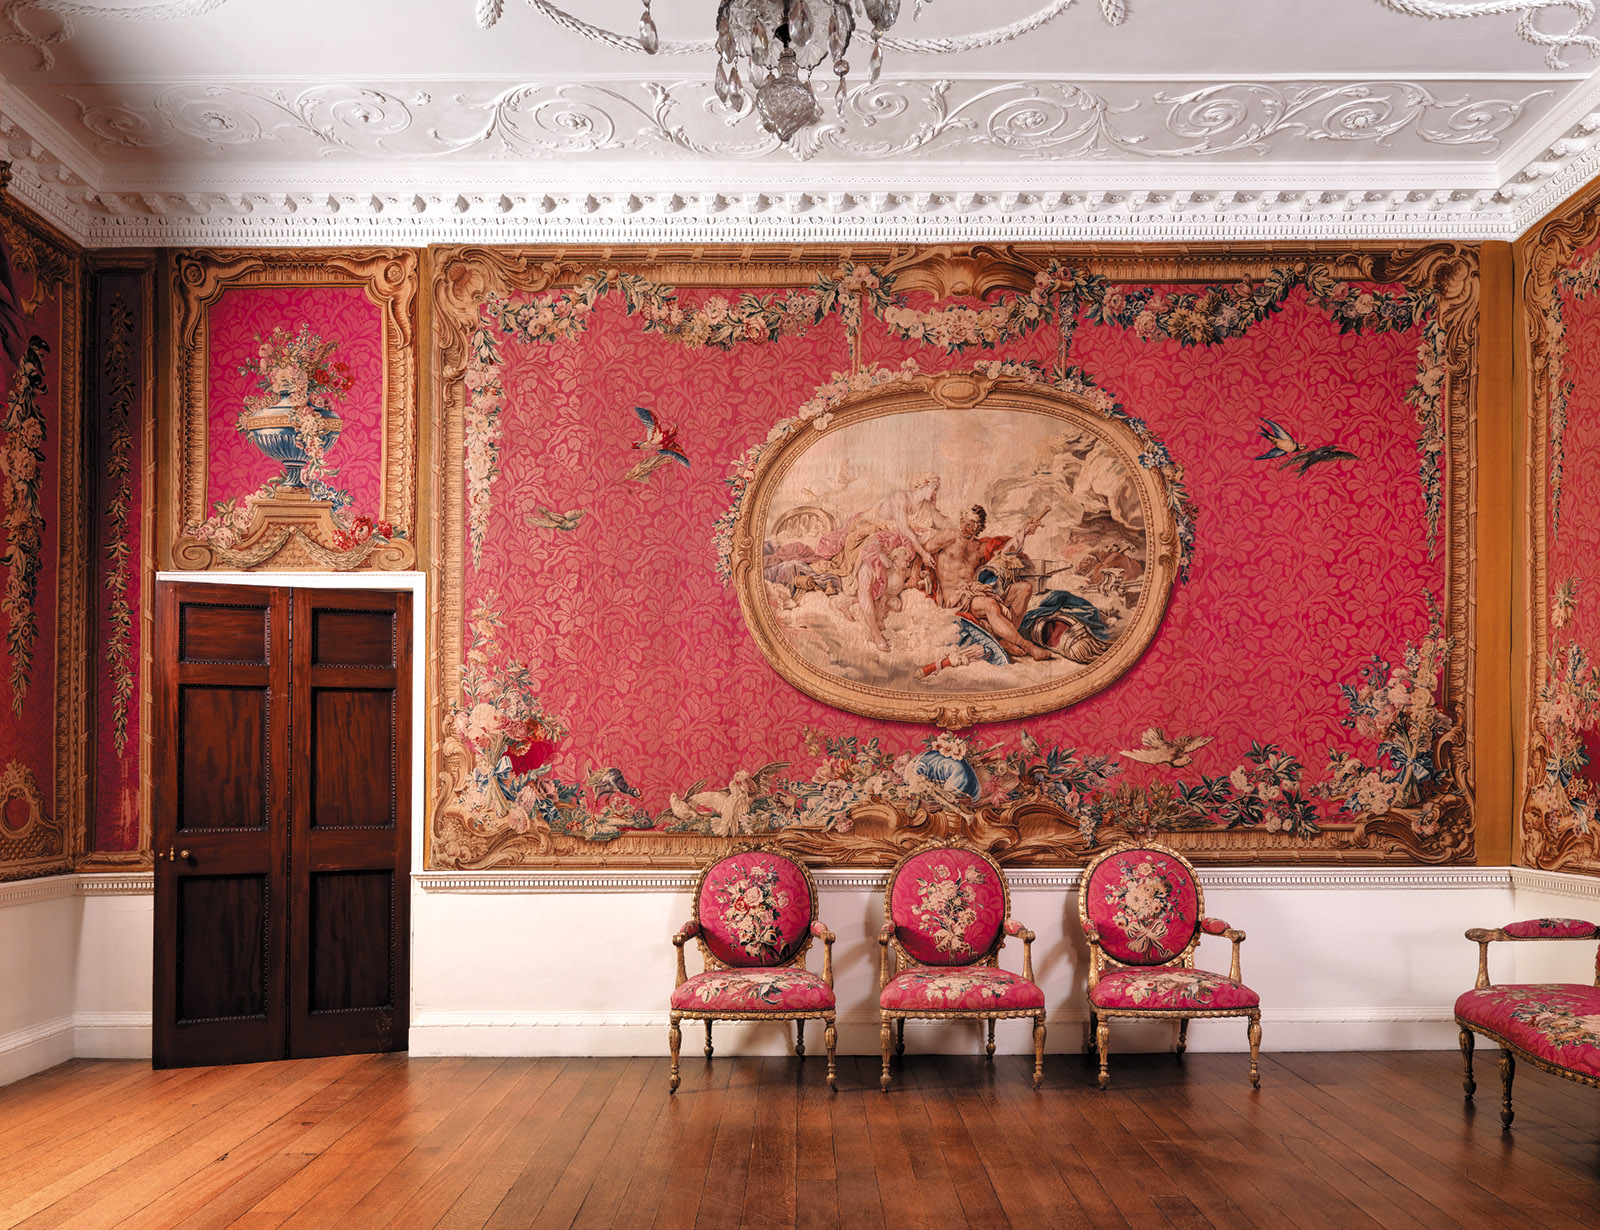 A reconstruction of the tapestry room at Croome Court, Worcestershire